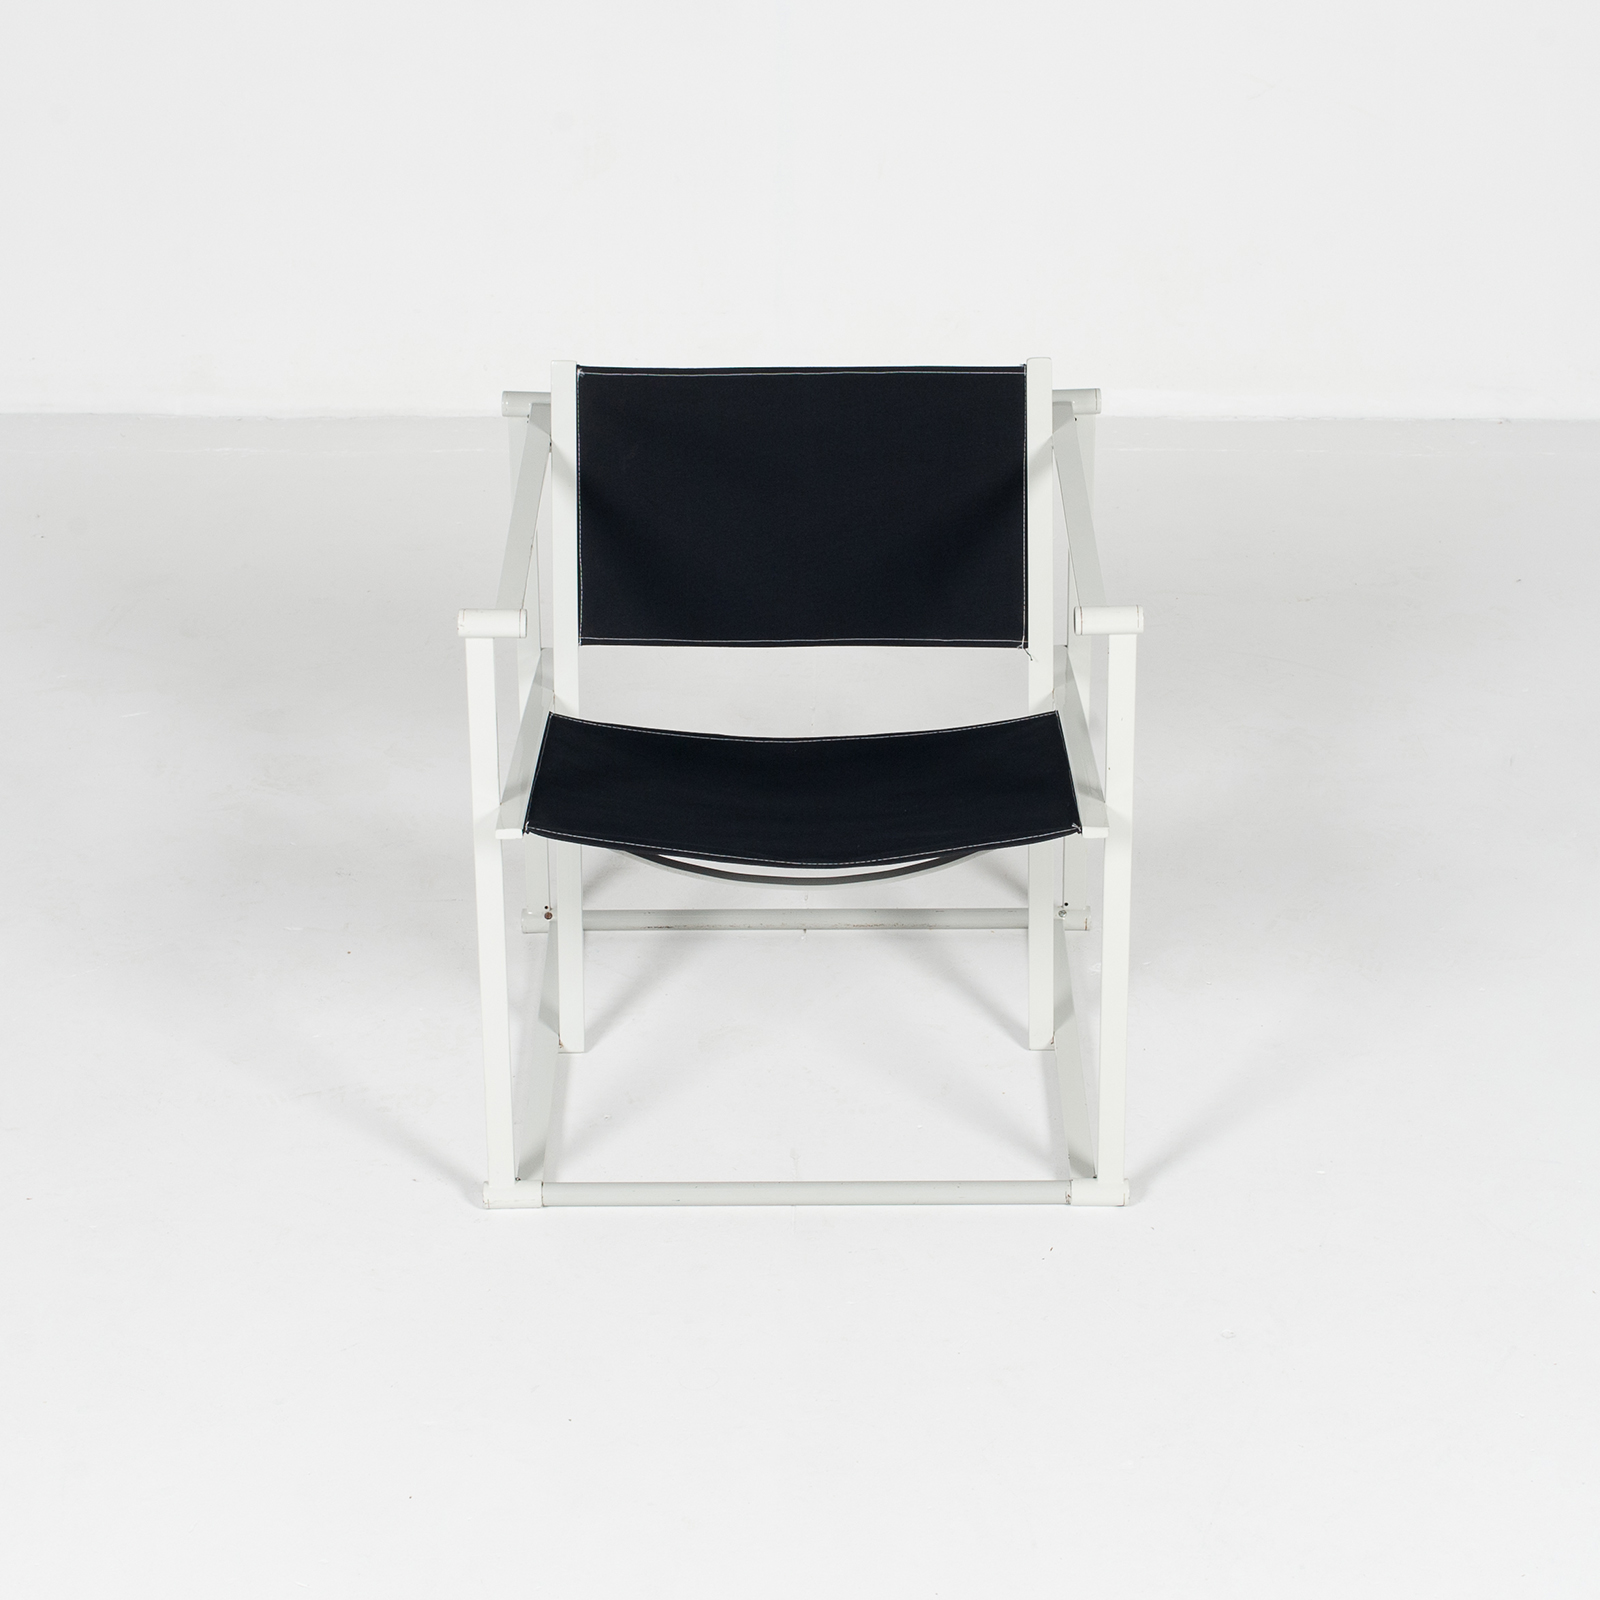 Model Fm60 Cubic Chair By Radboud Van Beekum For Pastoe In Black Canvas And Grey Frame, 1980s, The Netherlands33